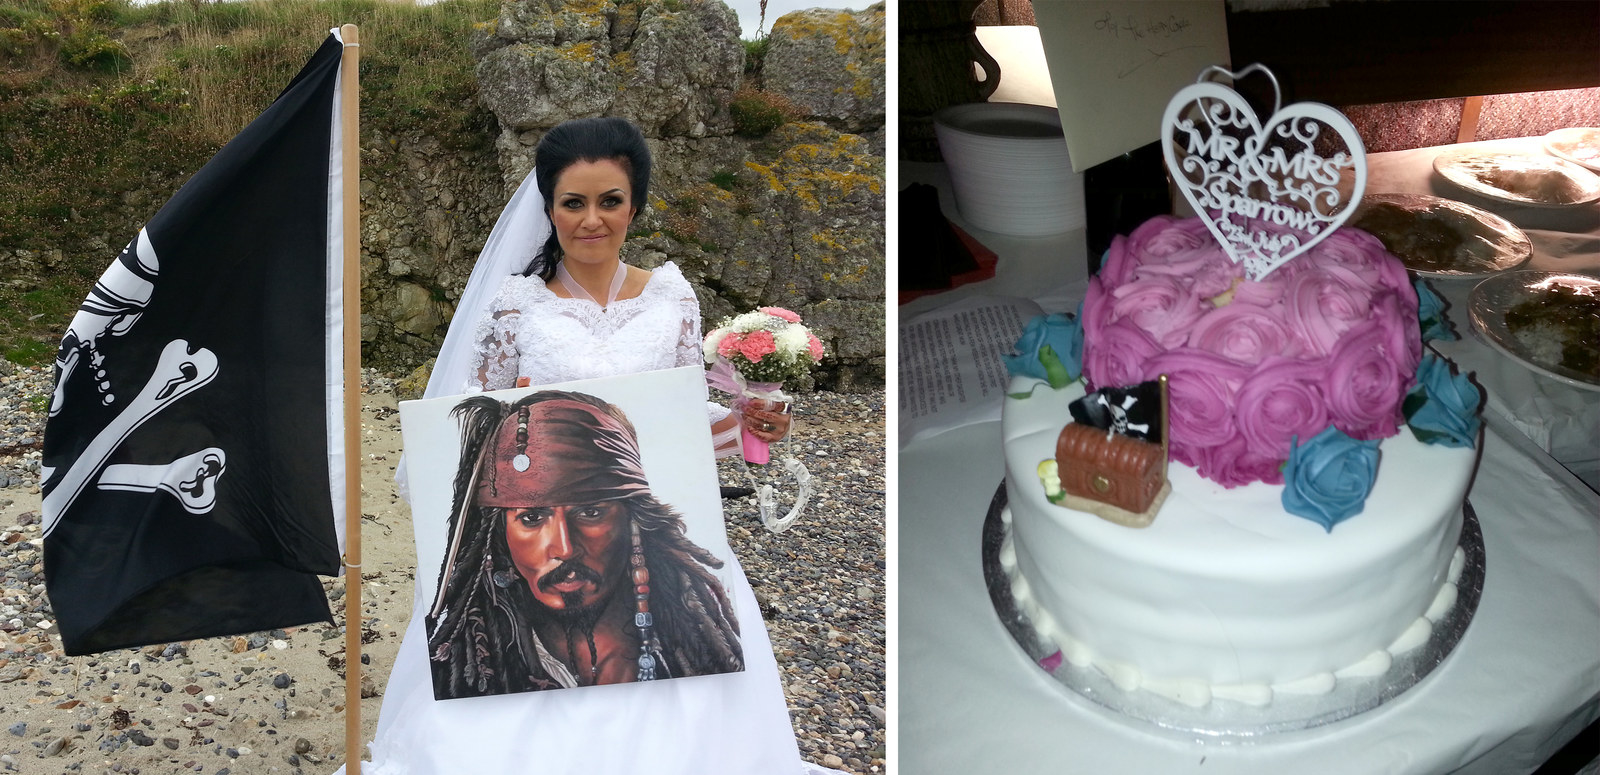 She says she married a pirate's ghost --- and she wants you to stop calling her crazy